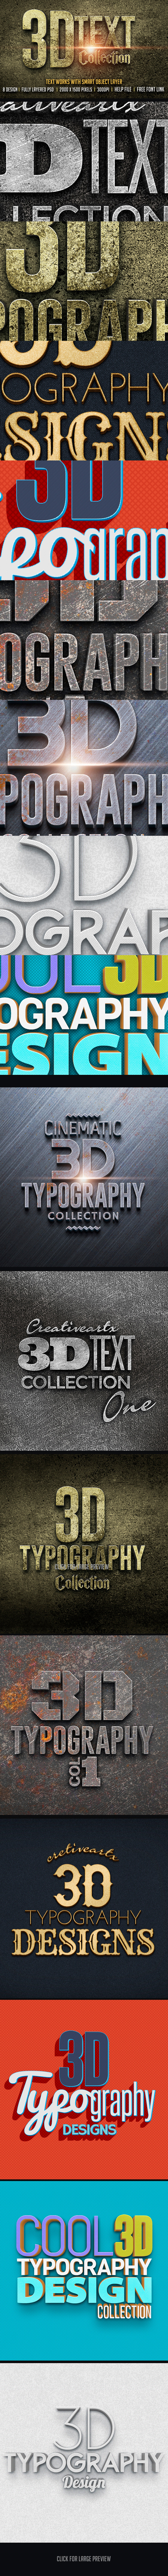 3D Text Col 1